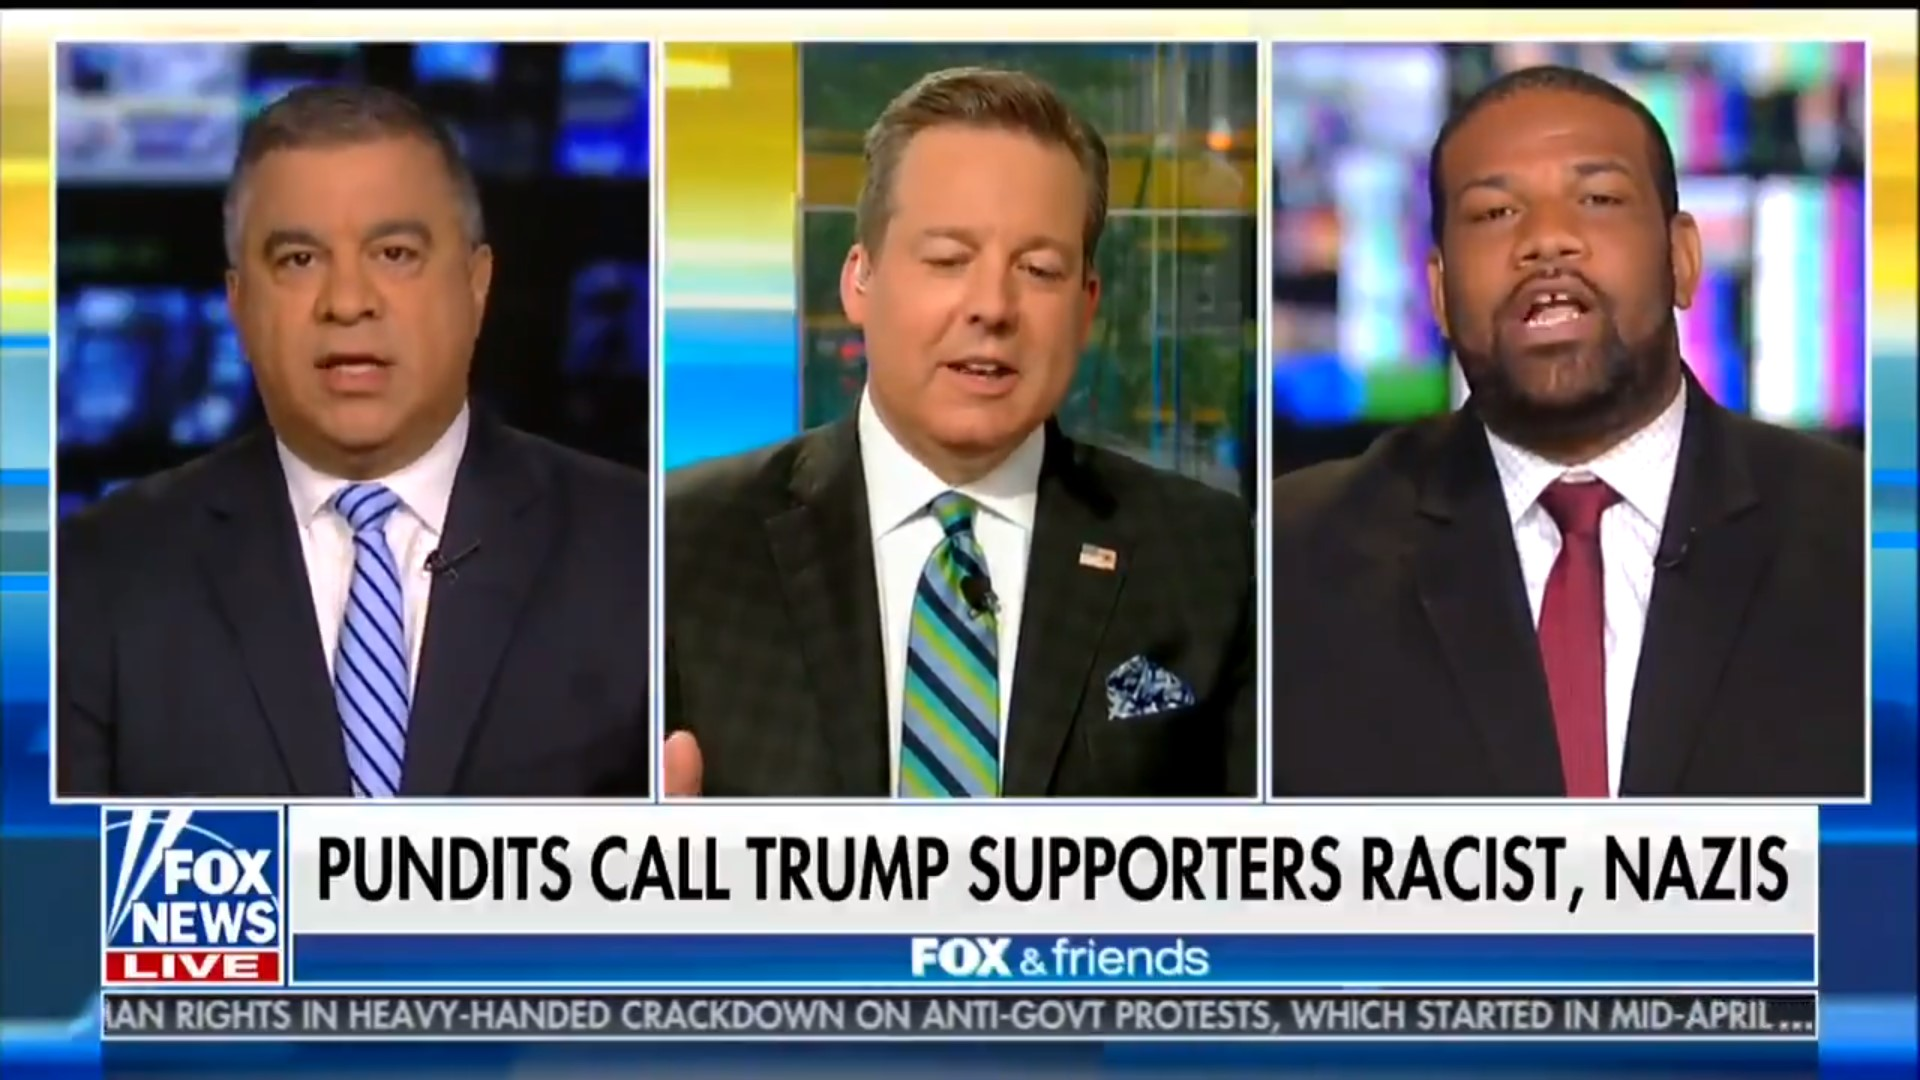 Fox's David Bossie Apologizes For Telling Black Man 'You're Out Of Your Cotton-Picking Mind'